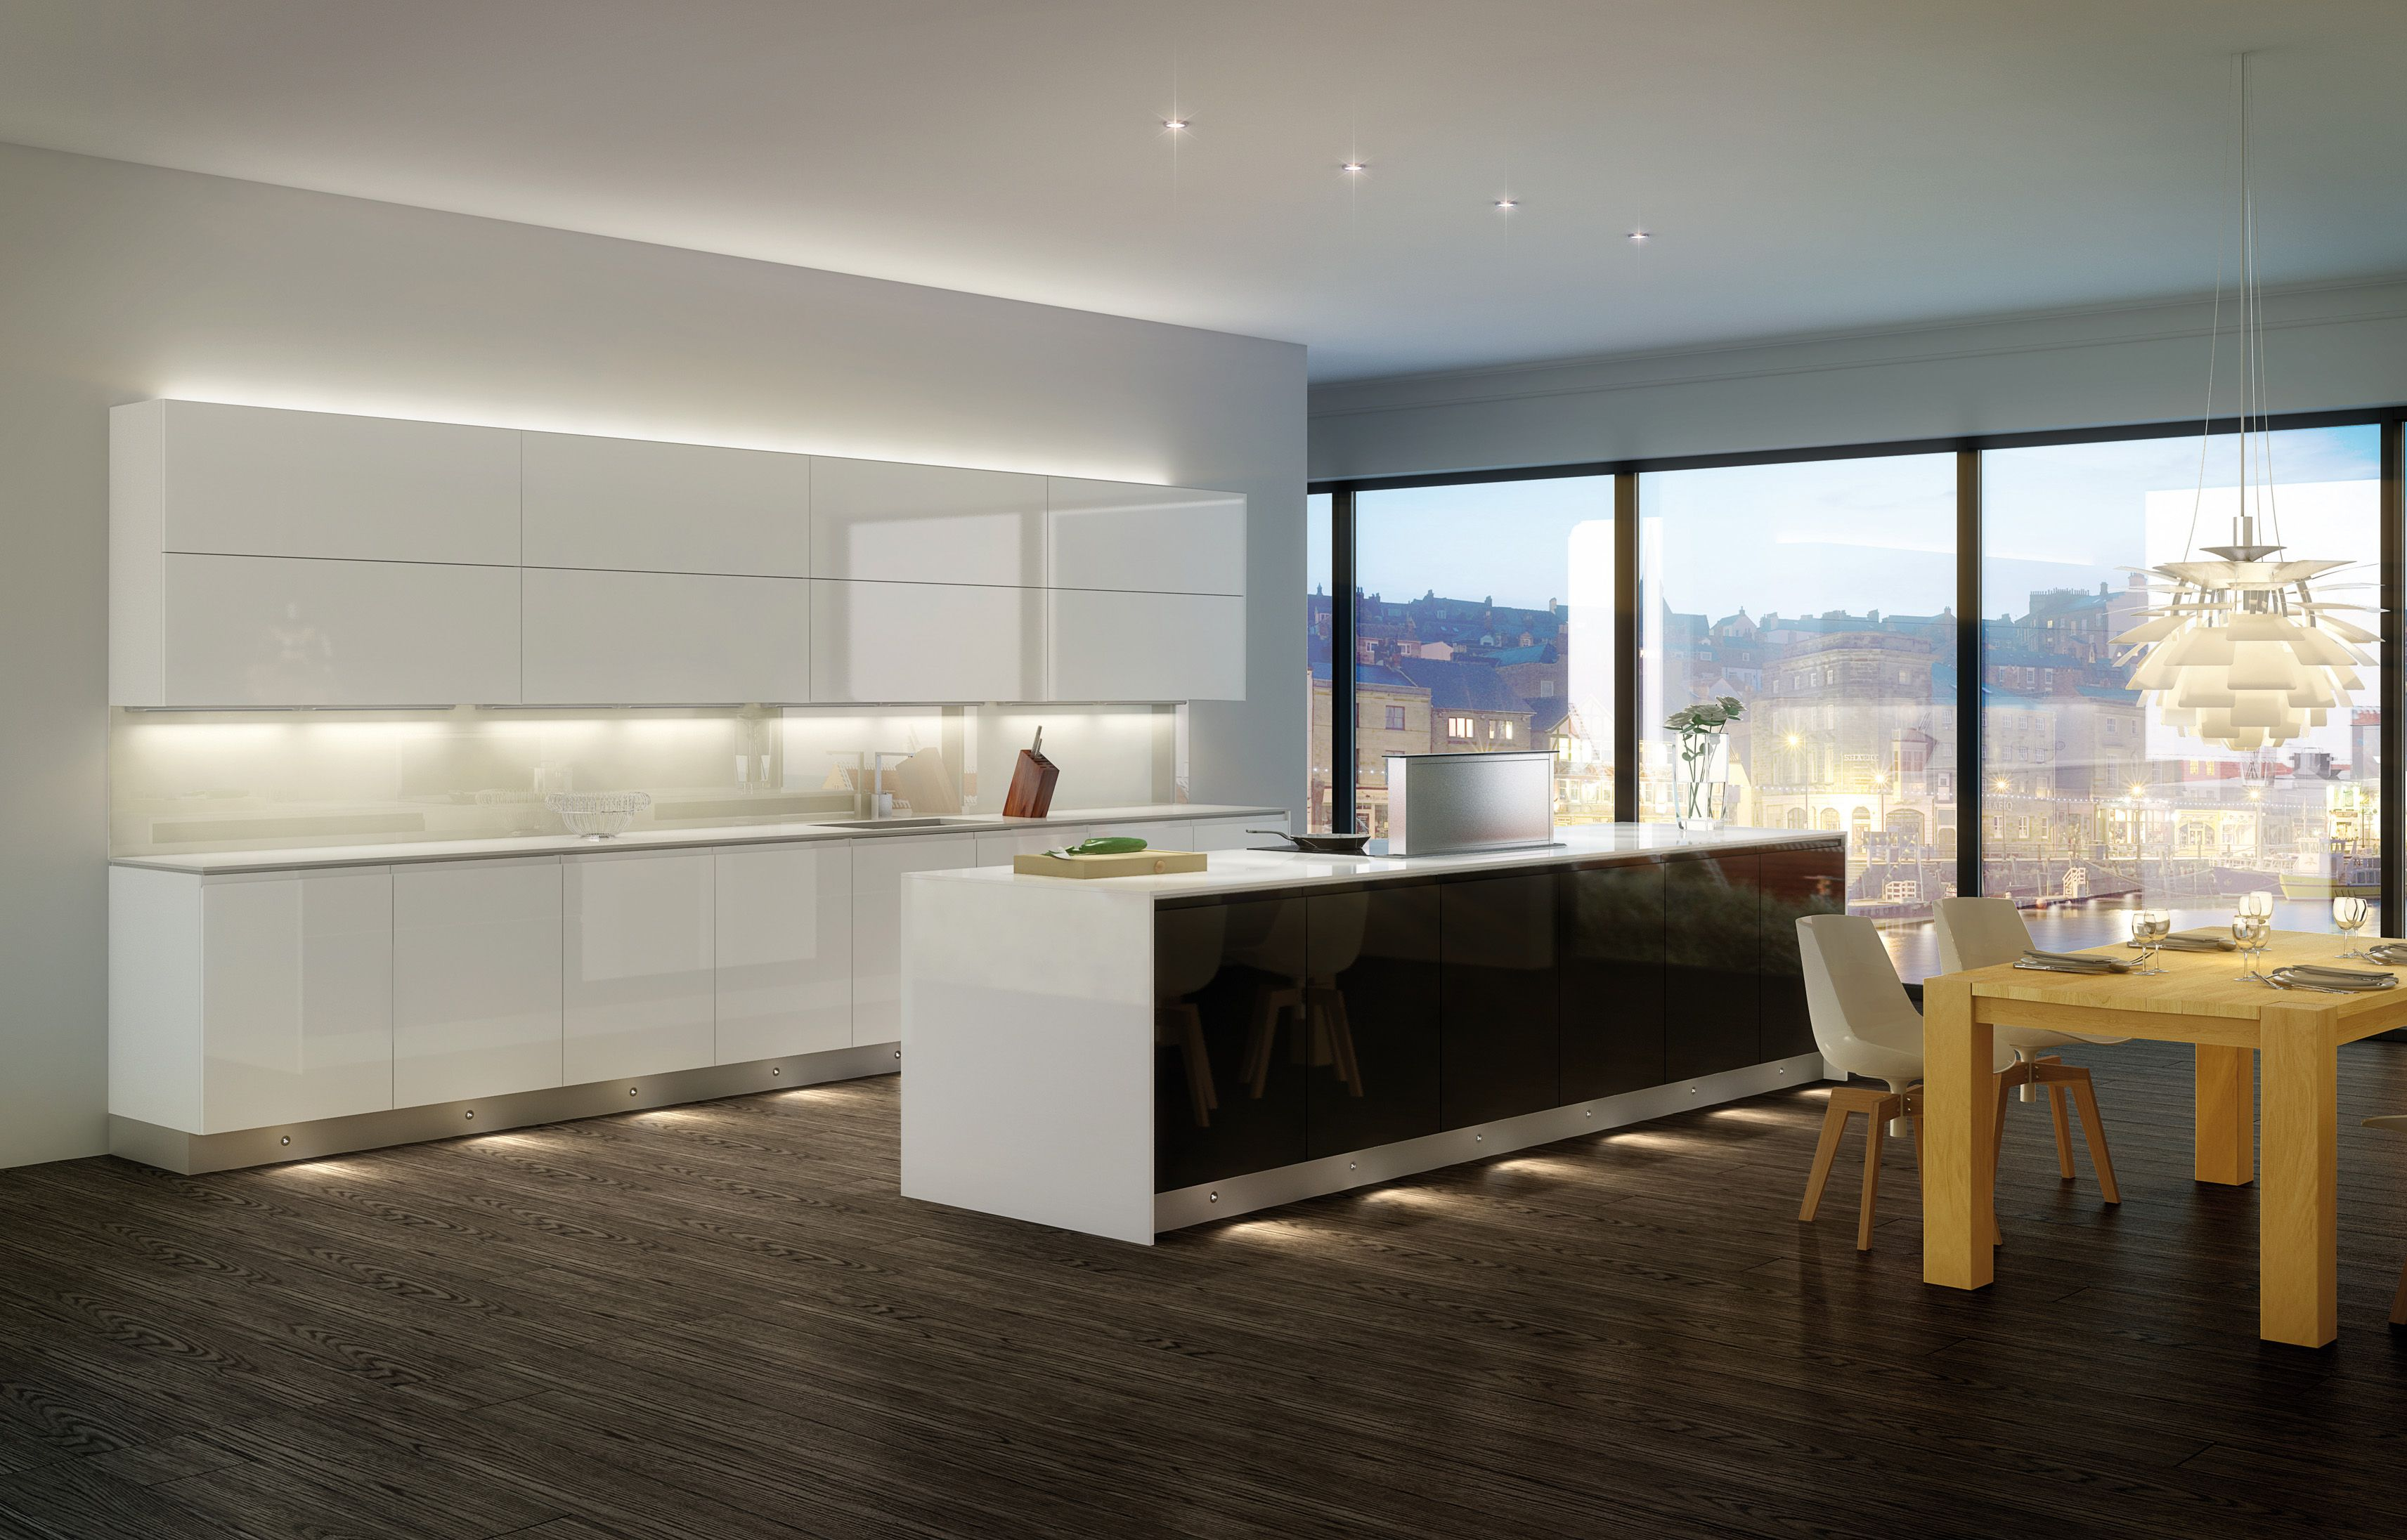 An Illuminated Modern German Kitchen Using LED Lighting Strips - Kitchen plinth strip lighting